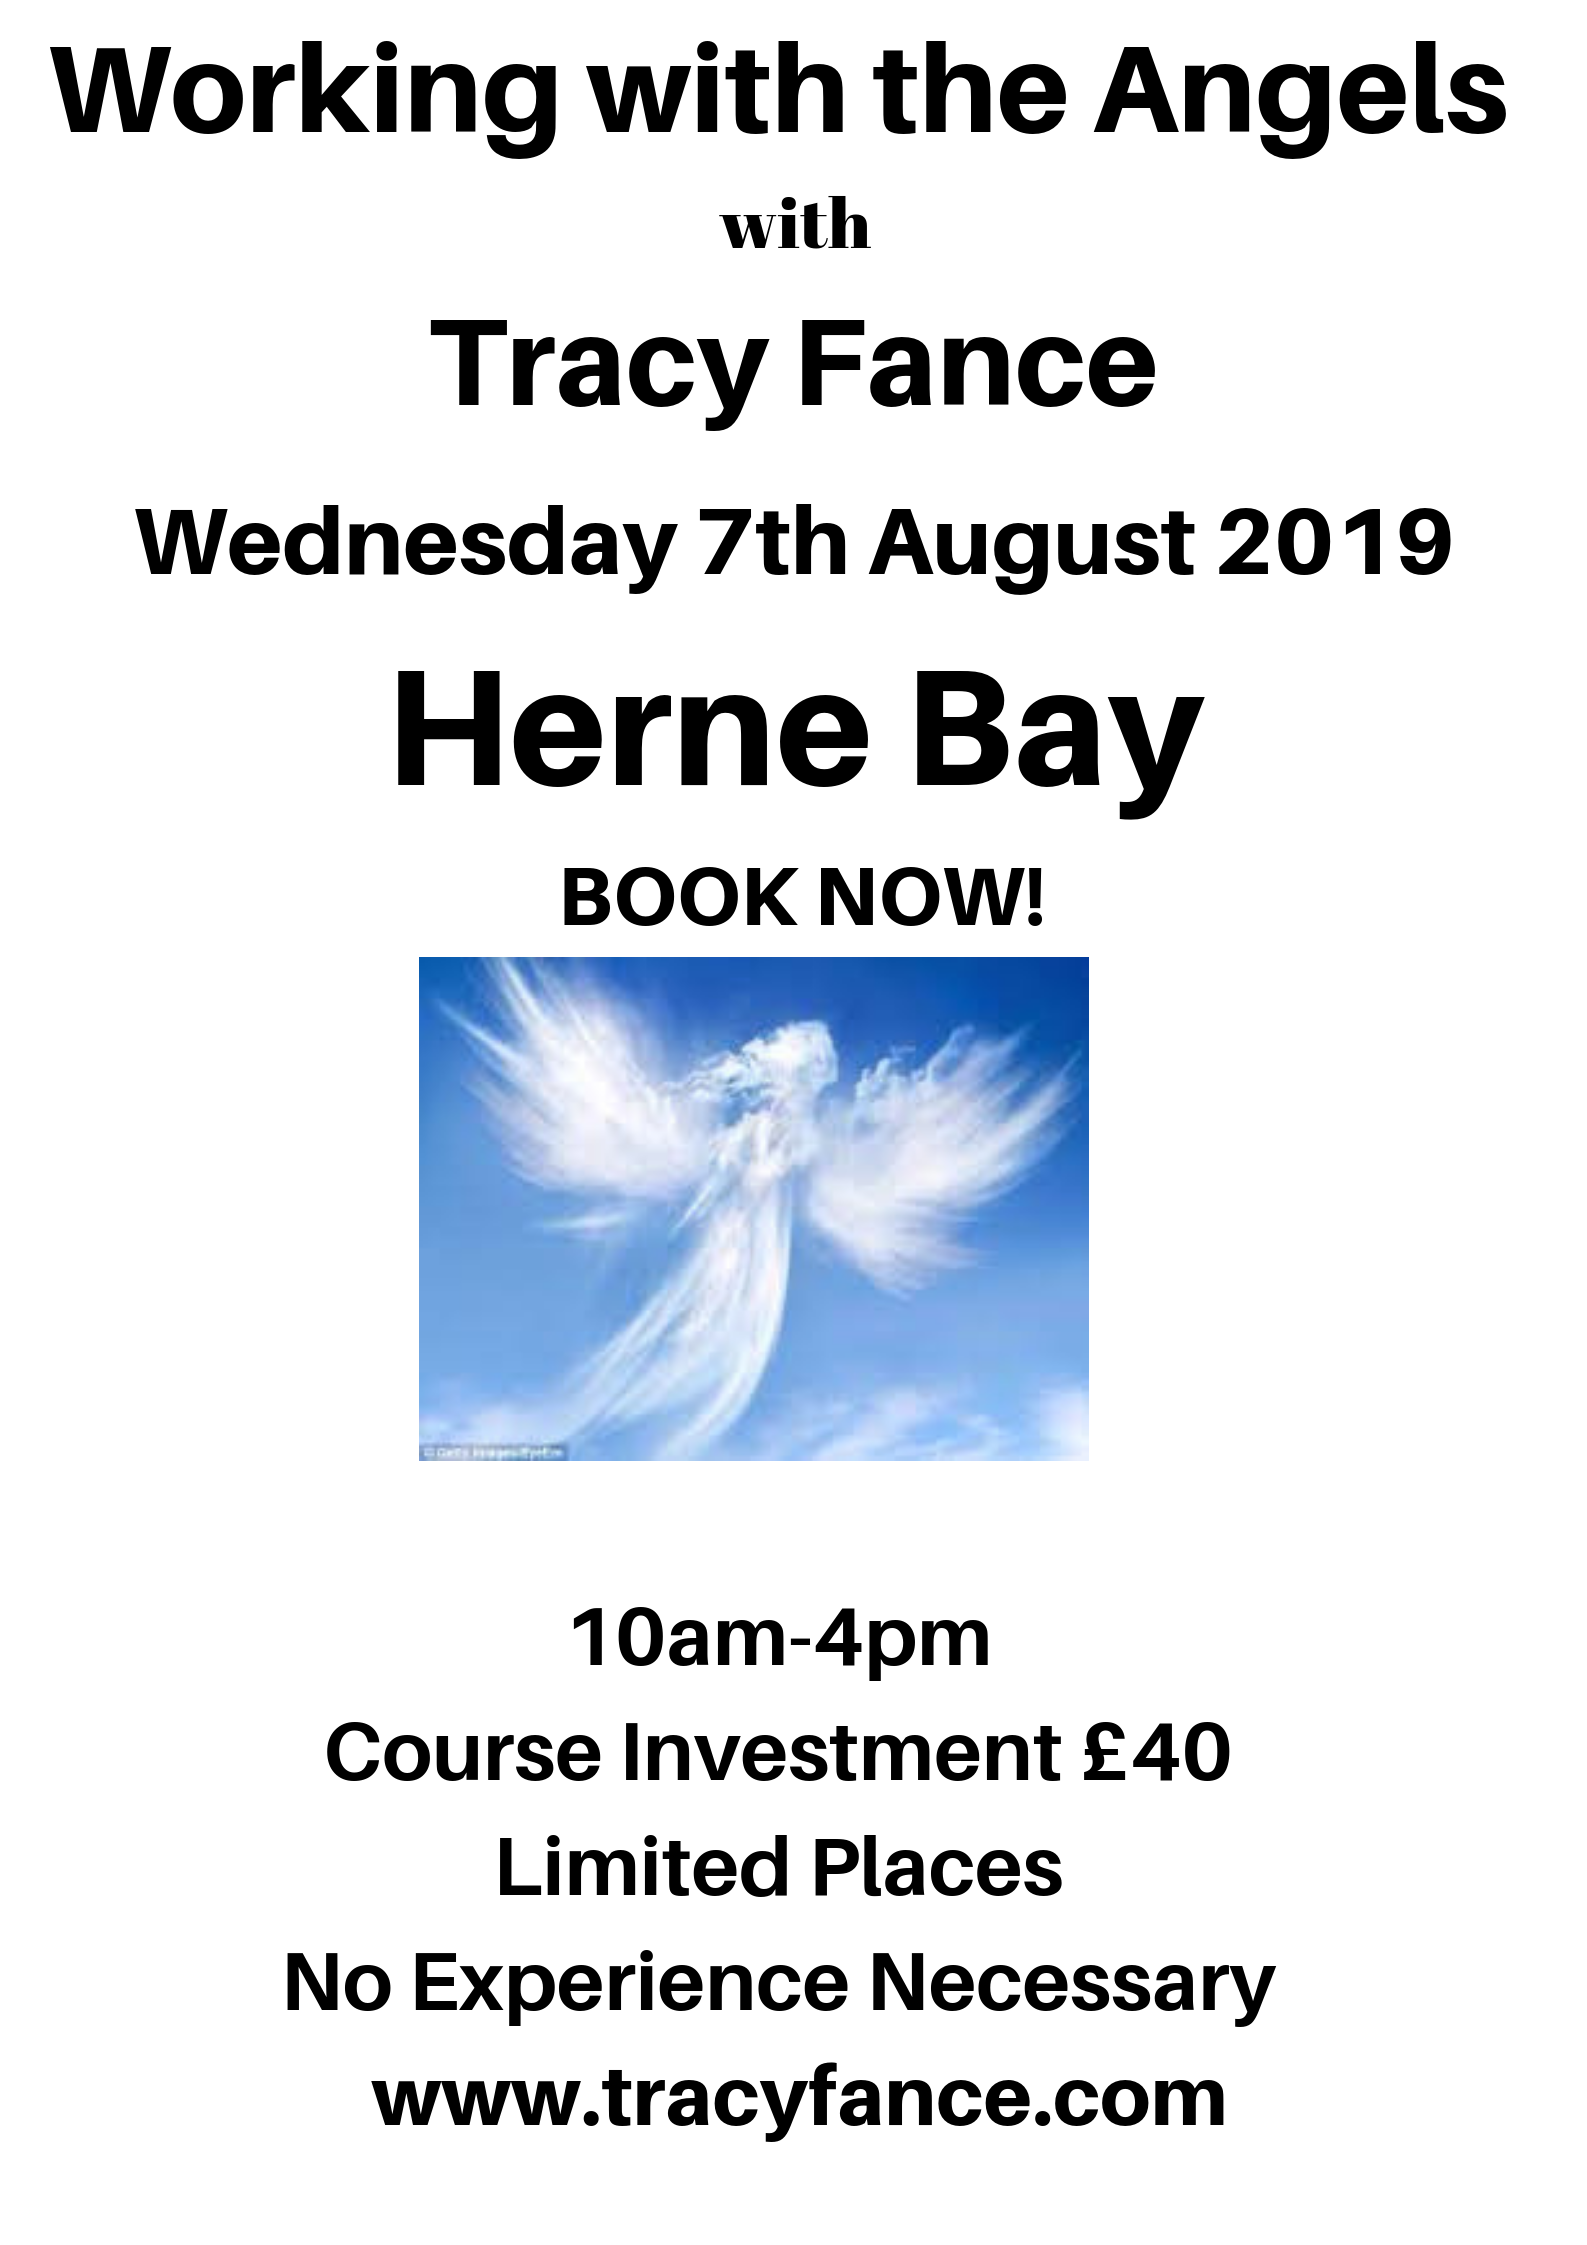 Working with Angels with Tracy Fance